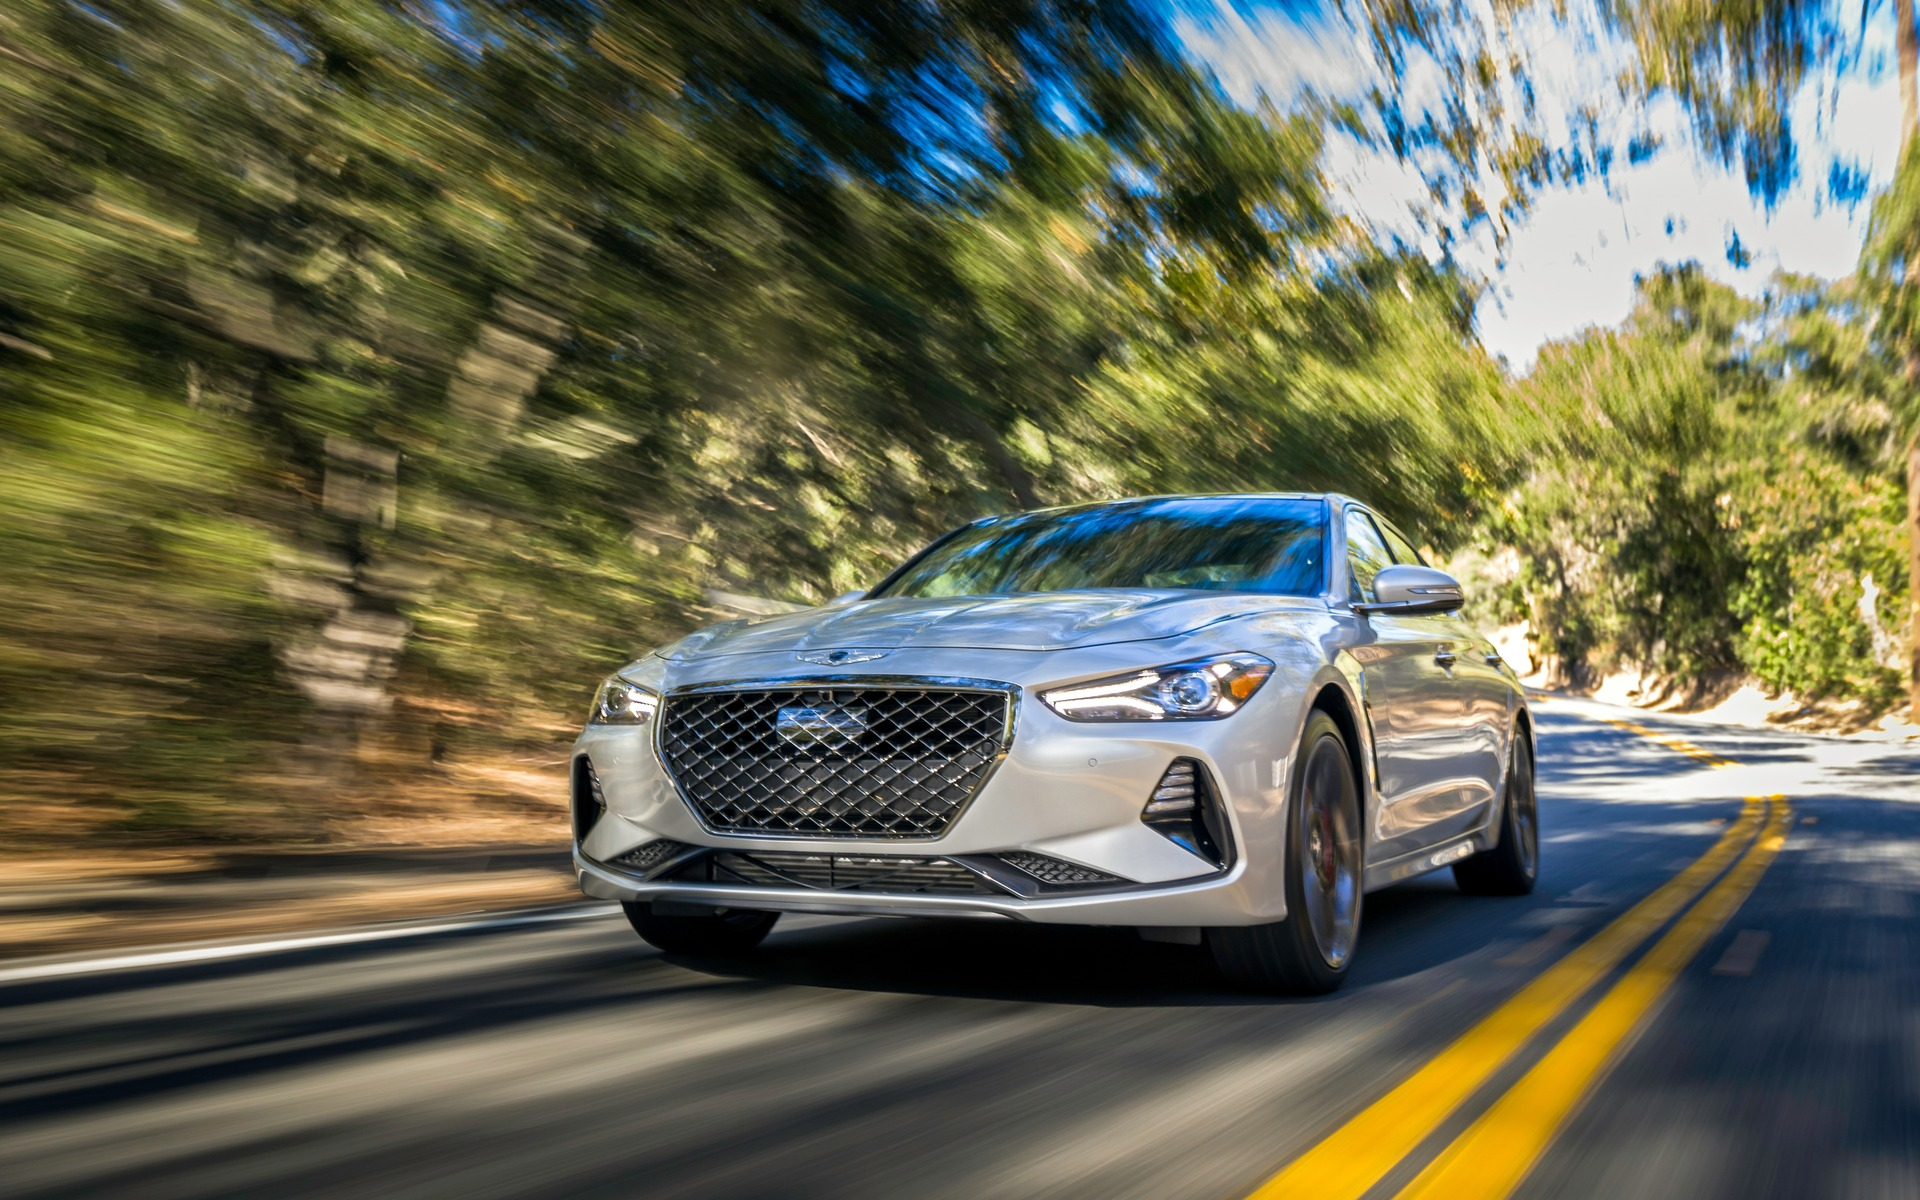 2019 Genesis G70 Road and Track this Week 1 18